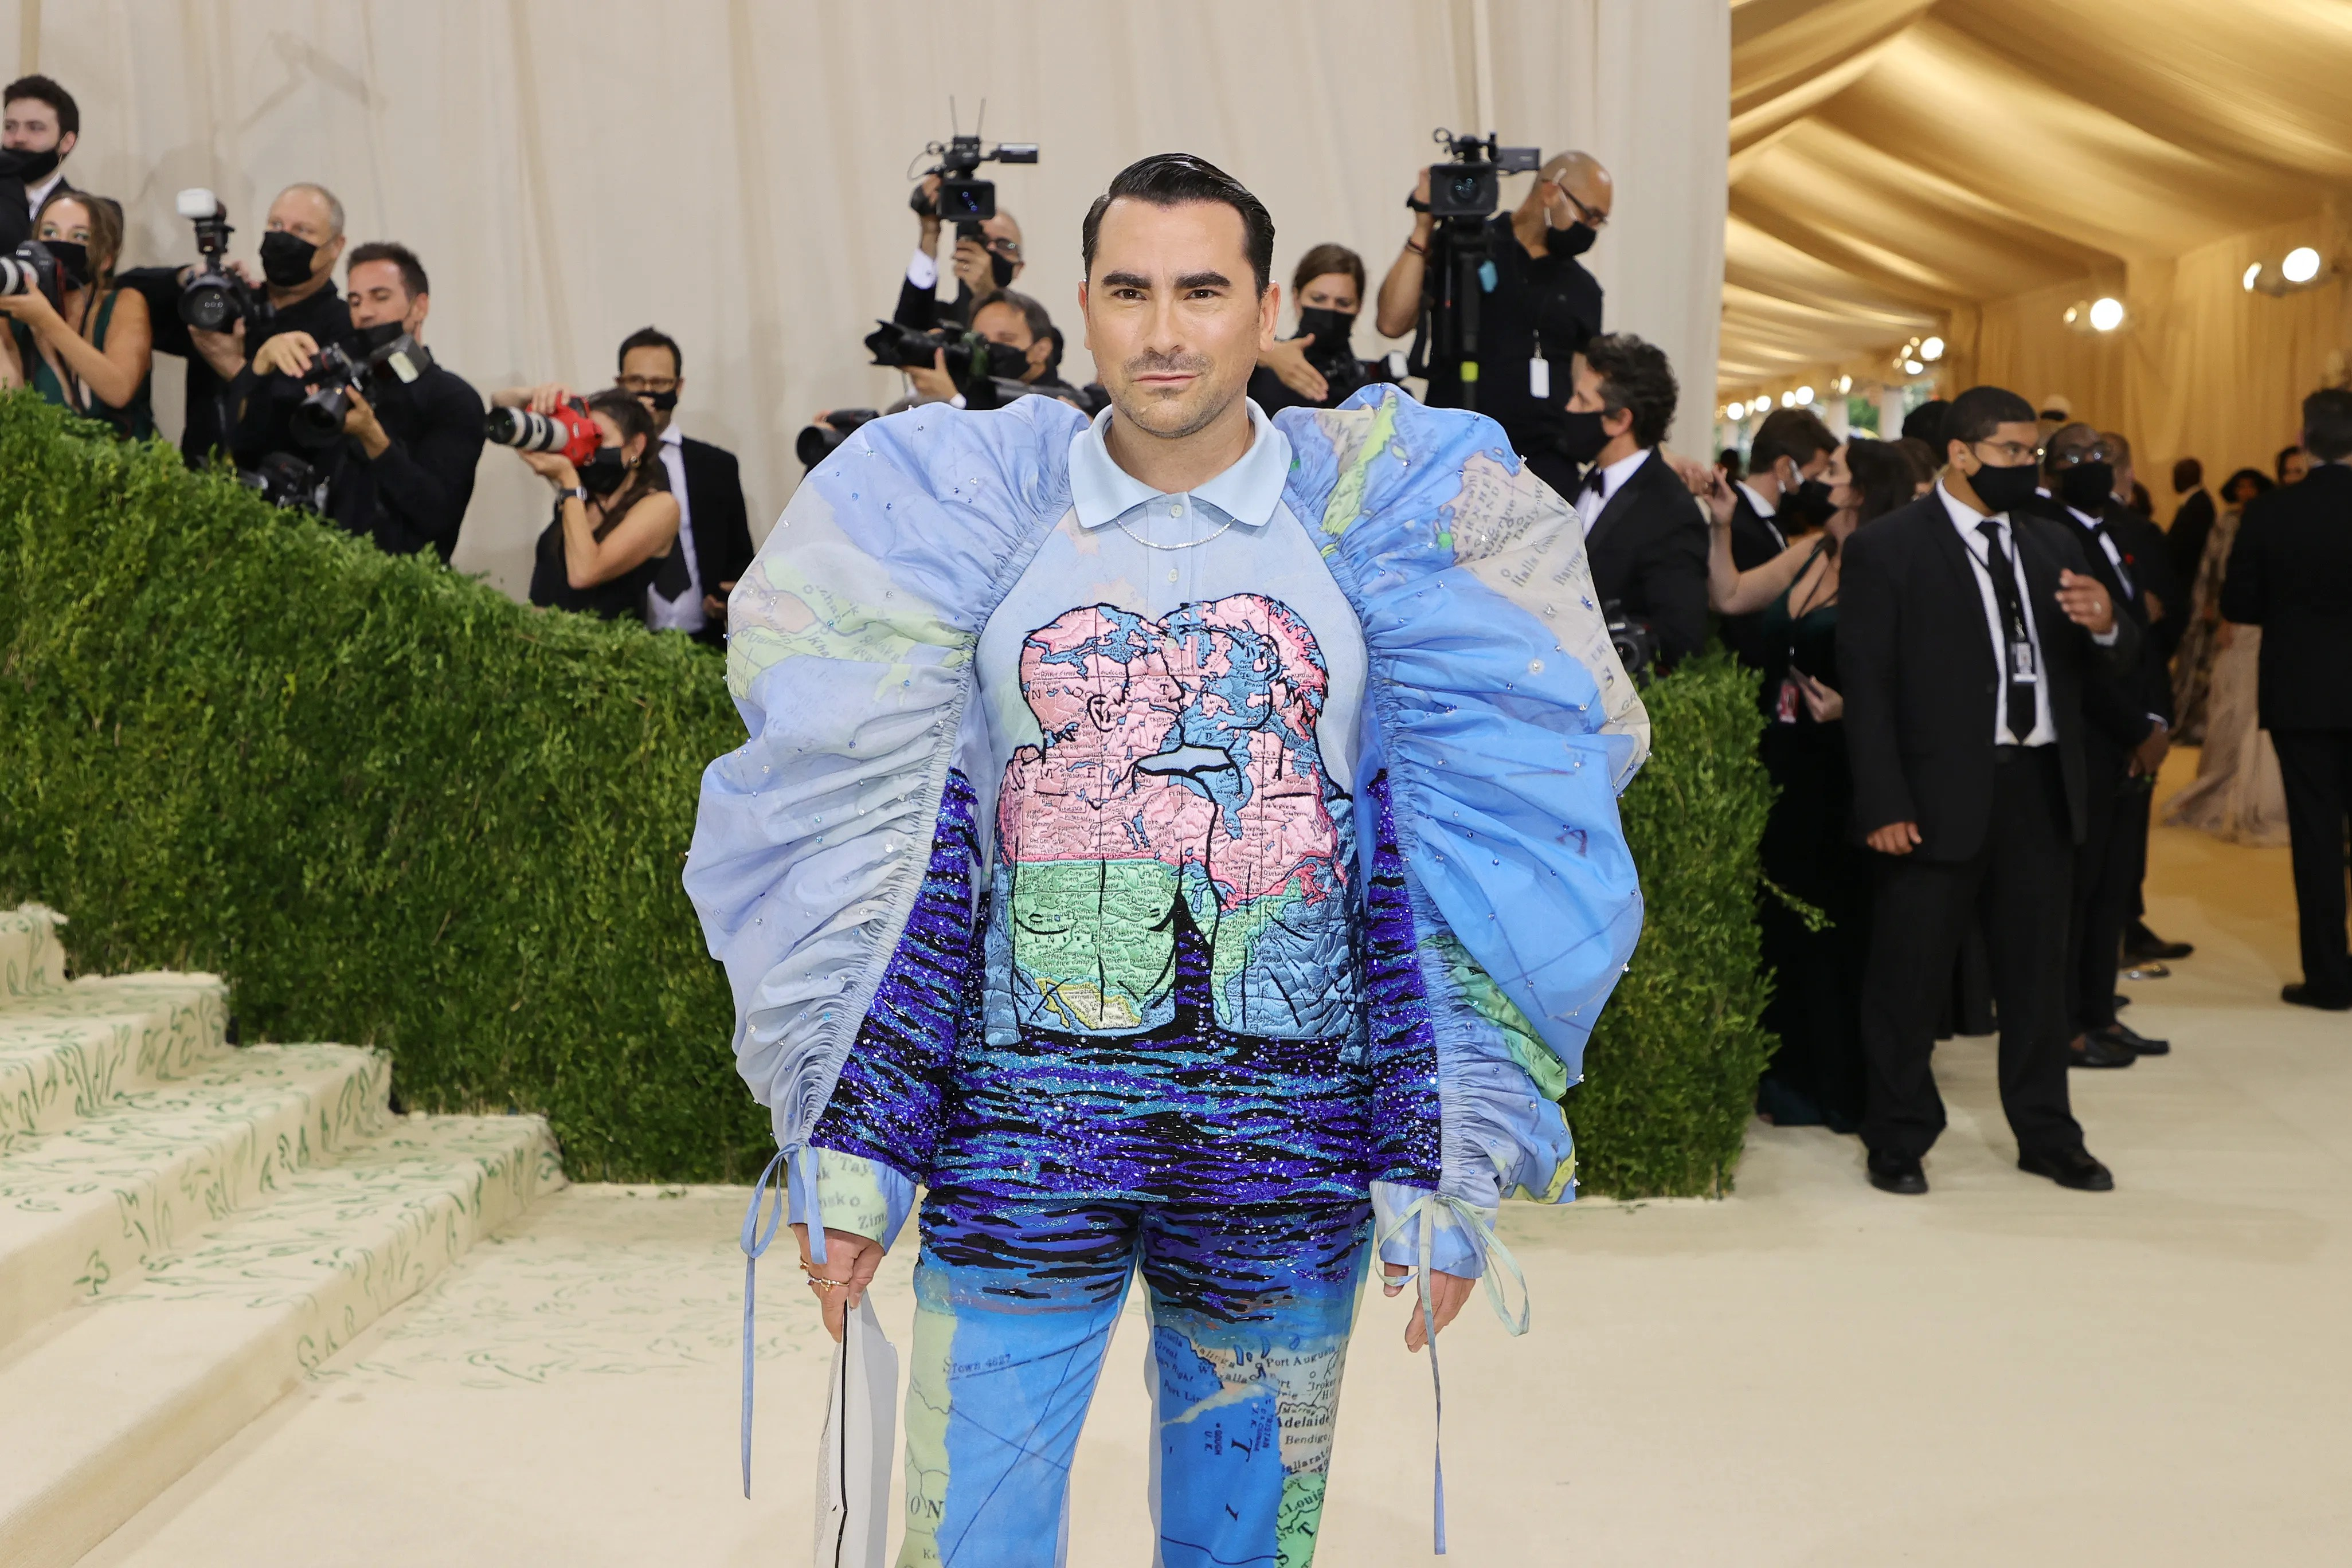 """""""Schitt's Creek"""" star Dan Levyhit the red carpet early in the evening with an outfit from Cartier that putLGBT love front and center, witha cartoon of two men kissing byDavid Wojnarovicz, who died of AIDsin 1992."""